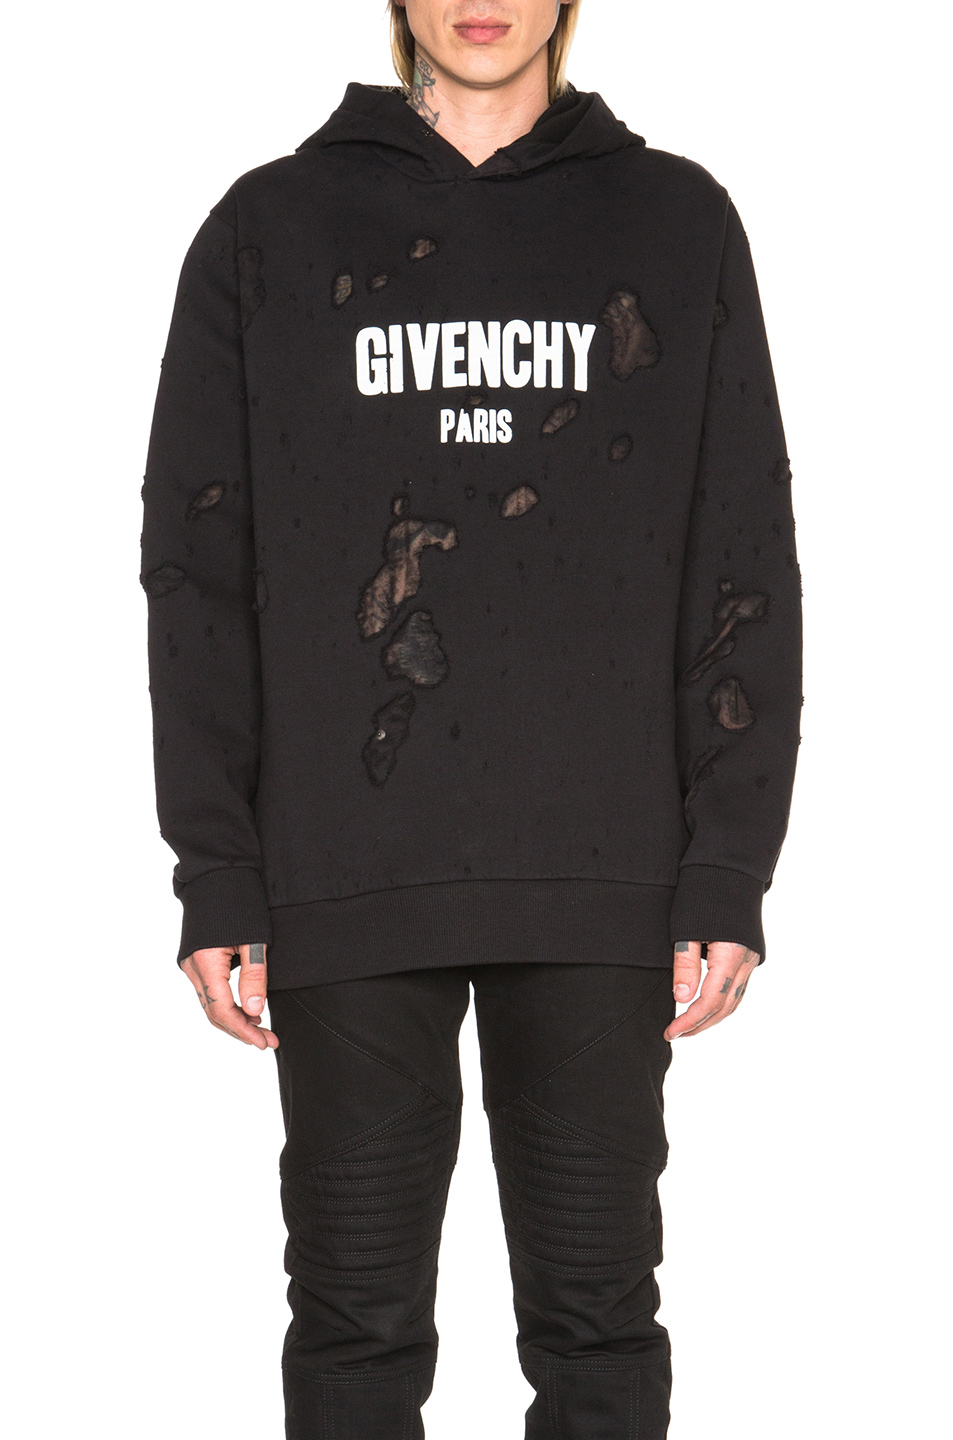 lyst givenchy paris hoodie in black. Black Bedroom Furniture Sets. Home Design Ideas